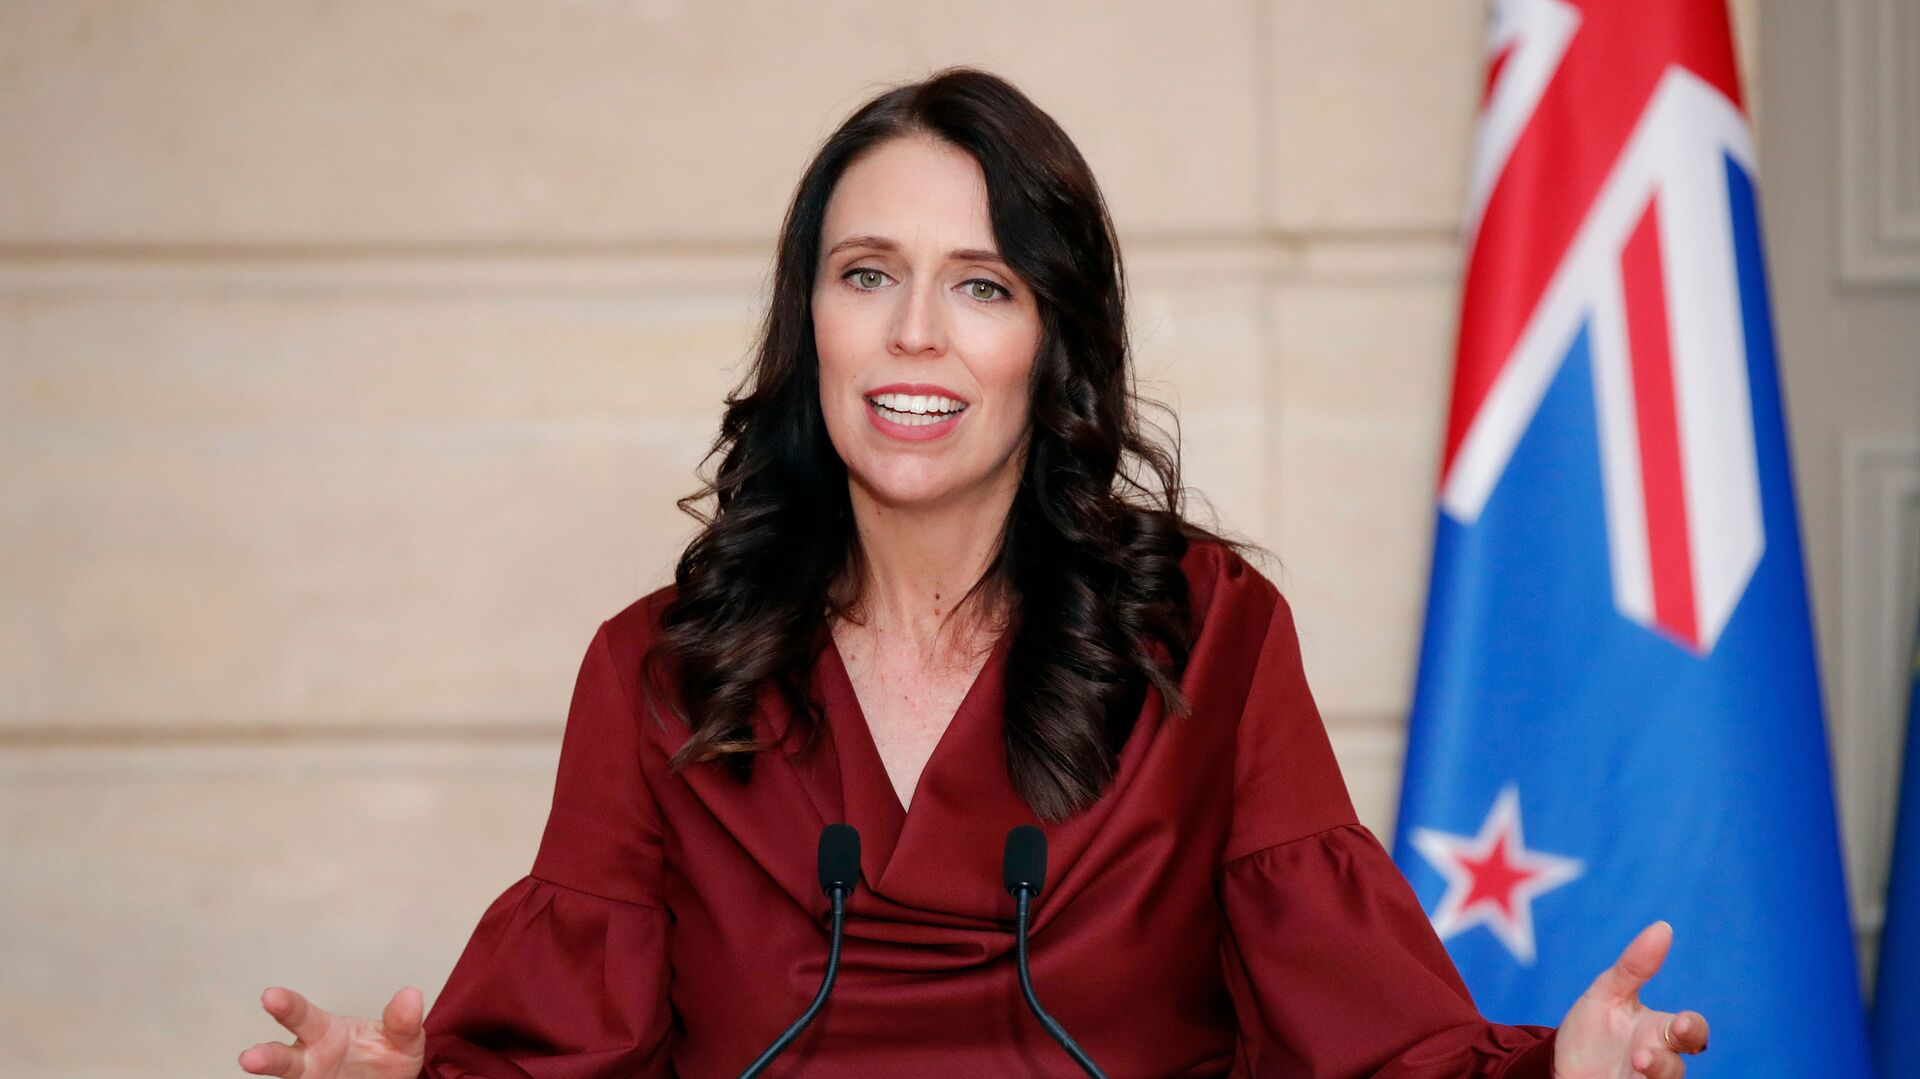 New Zealand Prime Minister Jacinda Ardern gestures as she speaks during a media conference with French President Emmanuel Macron, at the at the Elysee Palace in Paris, Monday, April 16, 2018 - Sputnik Italia, 1920, 09.02.2021